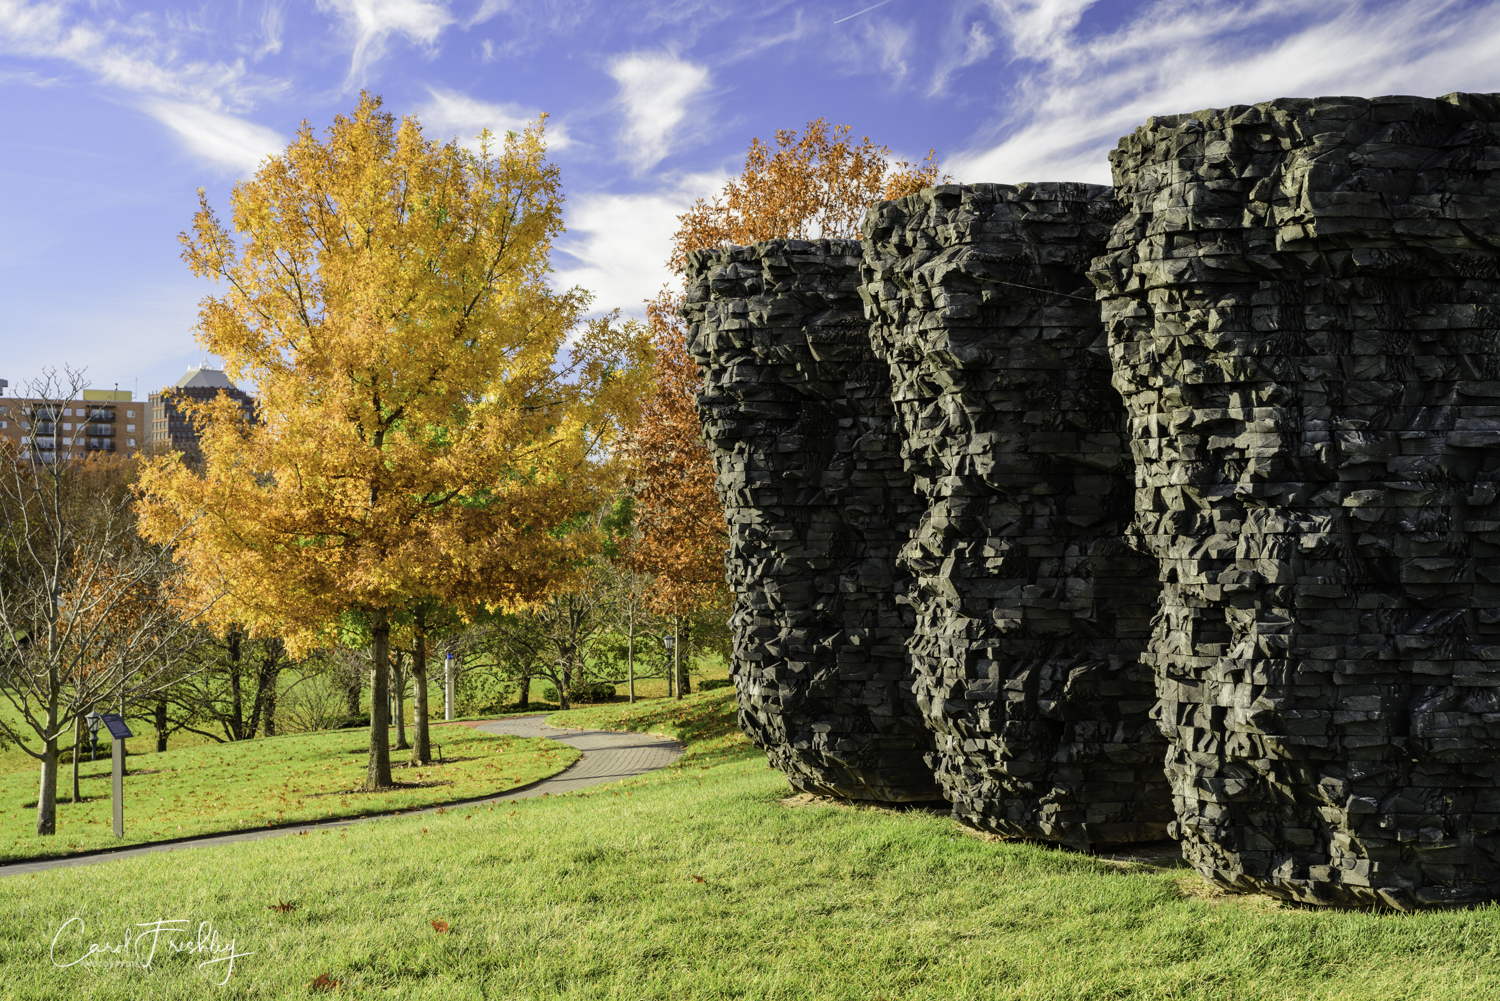 """Ursula von Rydingsvard (American of Polish descent, born 1942) sculpts intuitively and without drawings or models to guide her process.  She creates each sculpture directly from a mental image that evolves as she works.  The roughly hewn, steeply vertical surfaces of  Three Bowls  bring to mind weathered, rocky cliffs.  Von Rydingsvard reinforces this impression by saturating the wood with black graphite, which silvers as it ages.  The artist stated, ""I am drawn tot hat part of the world where man-made walls erode in a way where there is no longer a strict line between that which man has made and that which nature has made.""  Made of cedar and graphite in 1990."